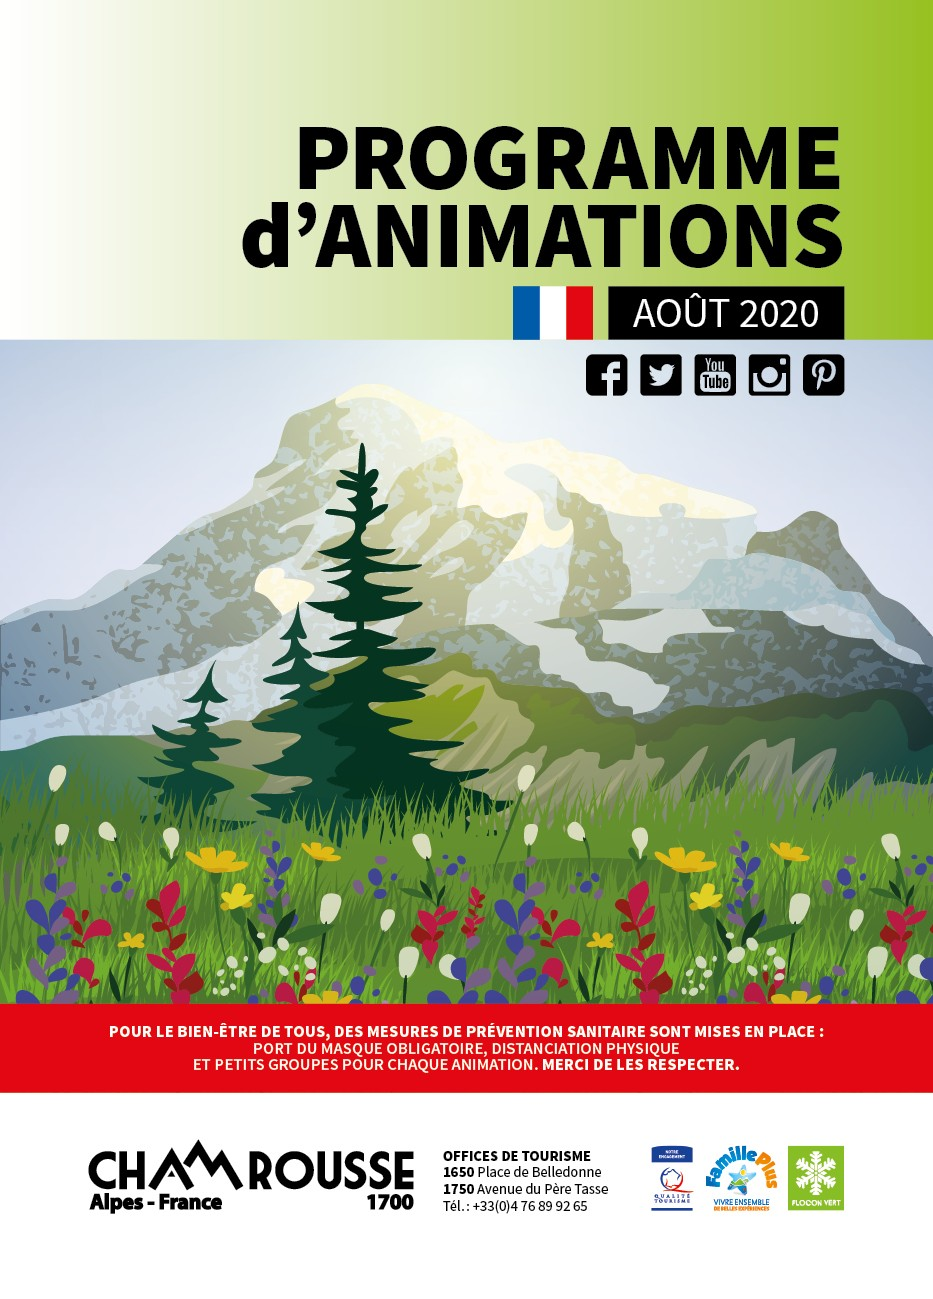 Chamrousse programme animations août 2020 station montagne isère alpes france